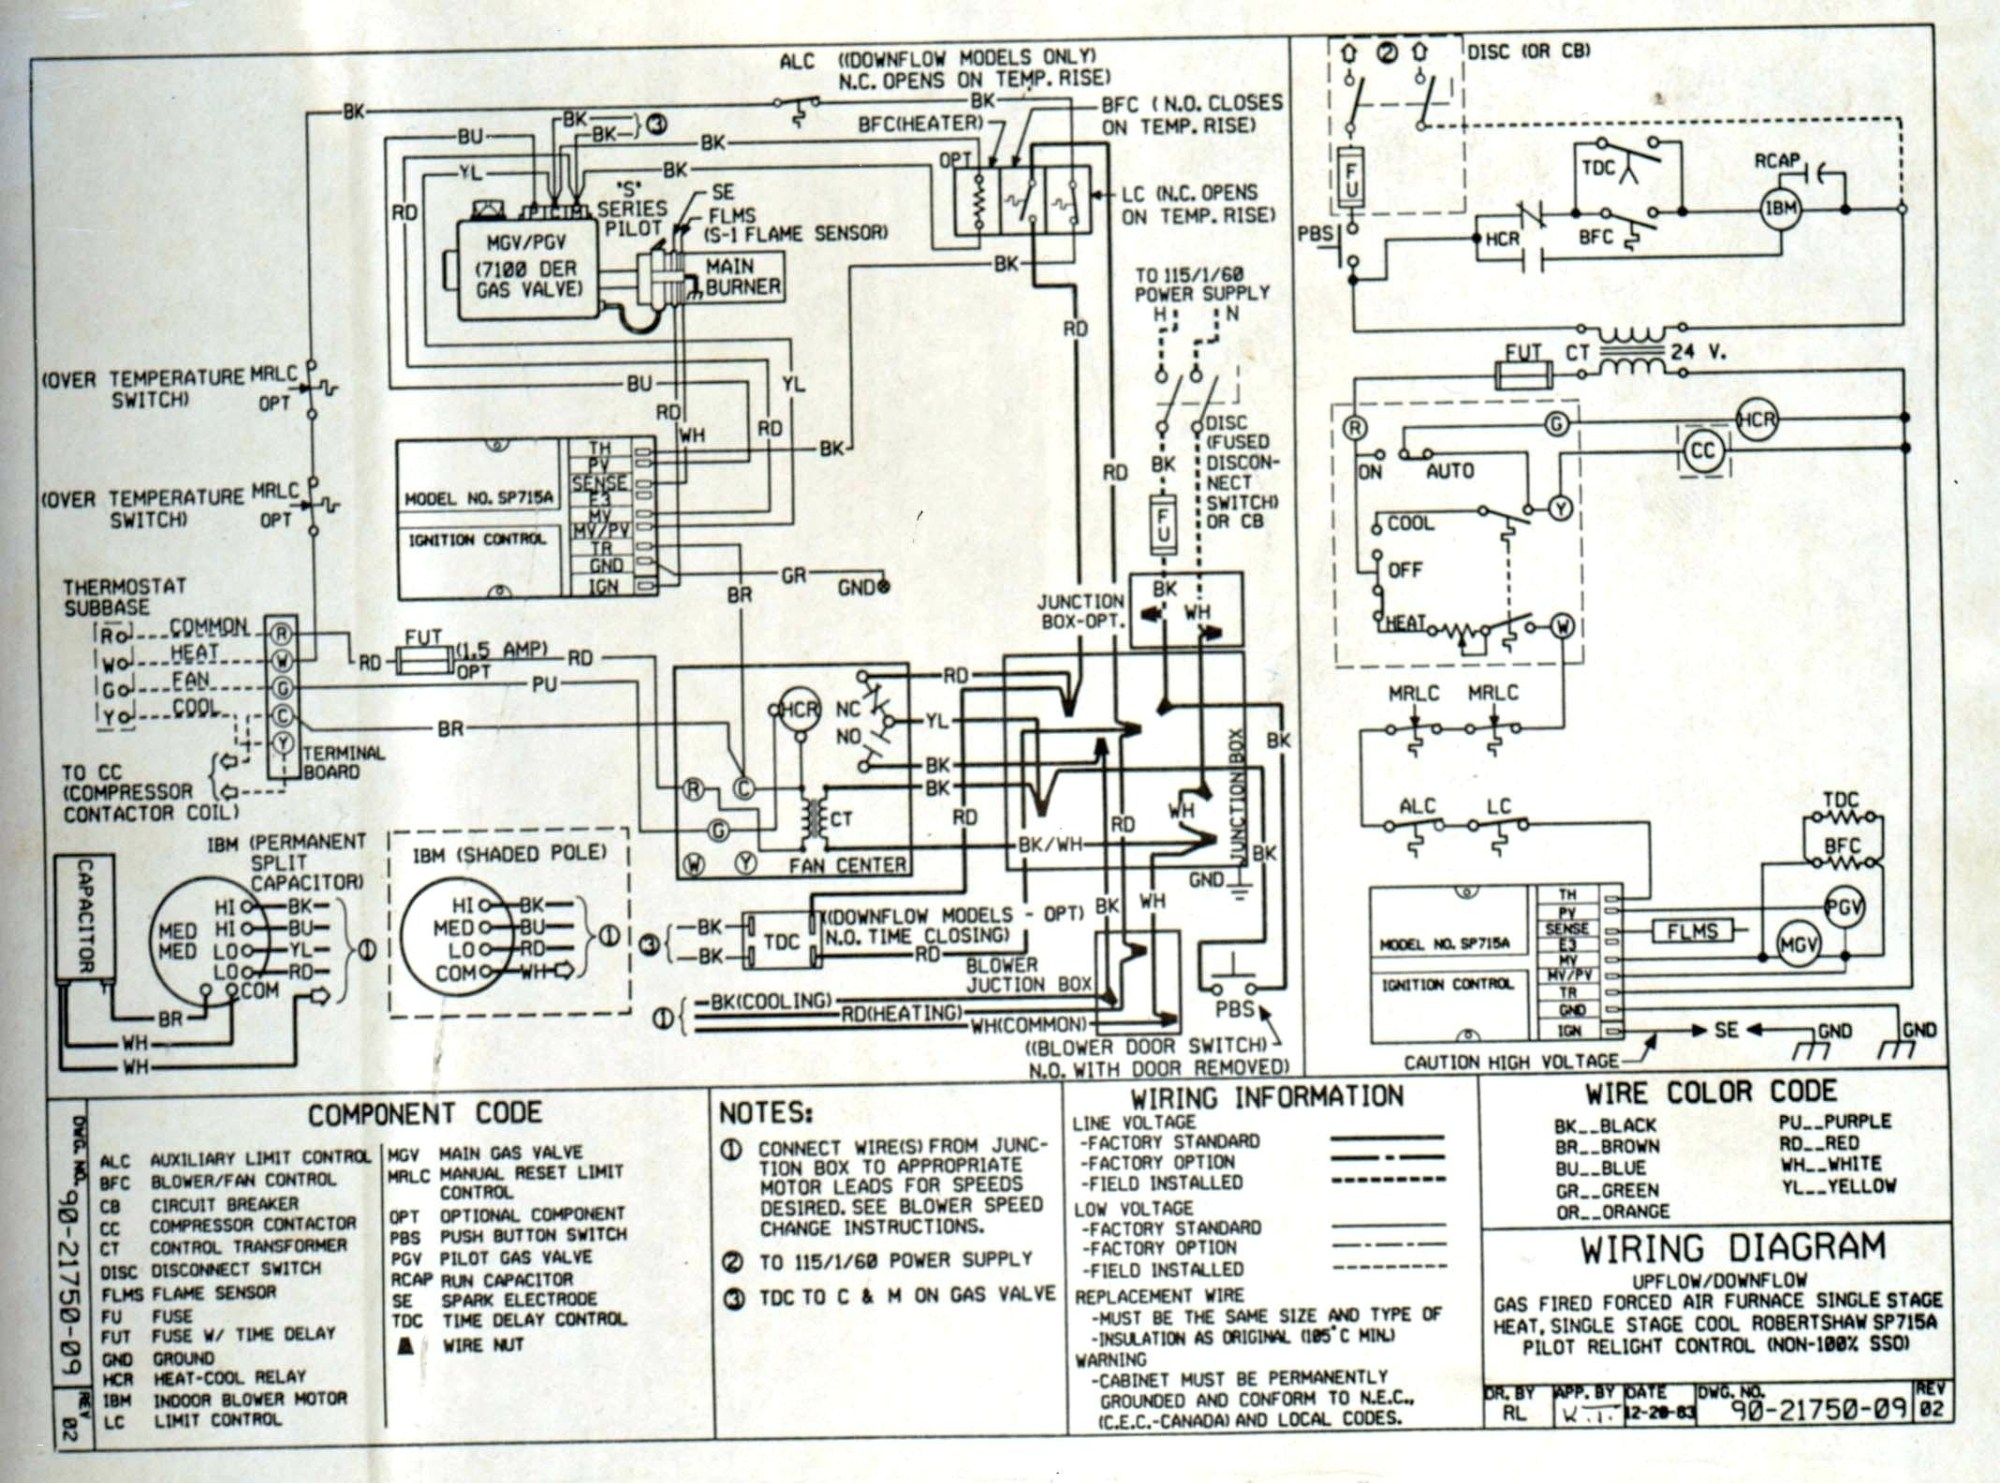 hight resolution of ge furnace blower motor wiring diagram collection furnace blower motor wiring diagram best york electric